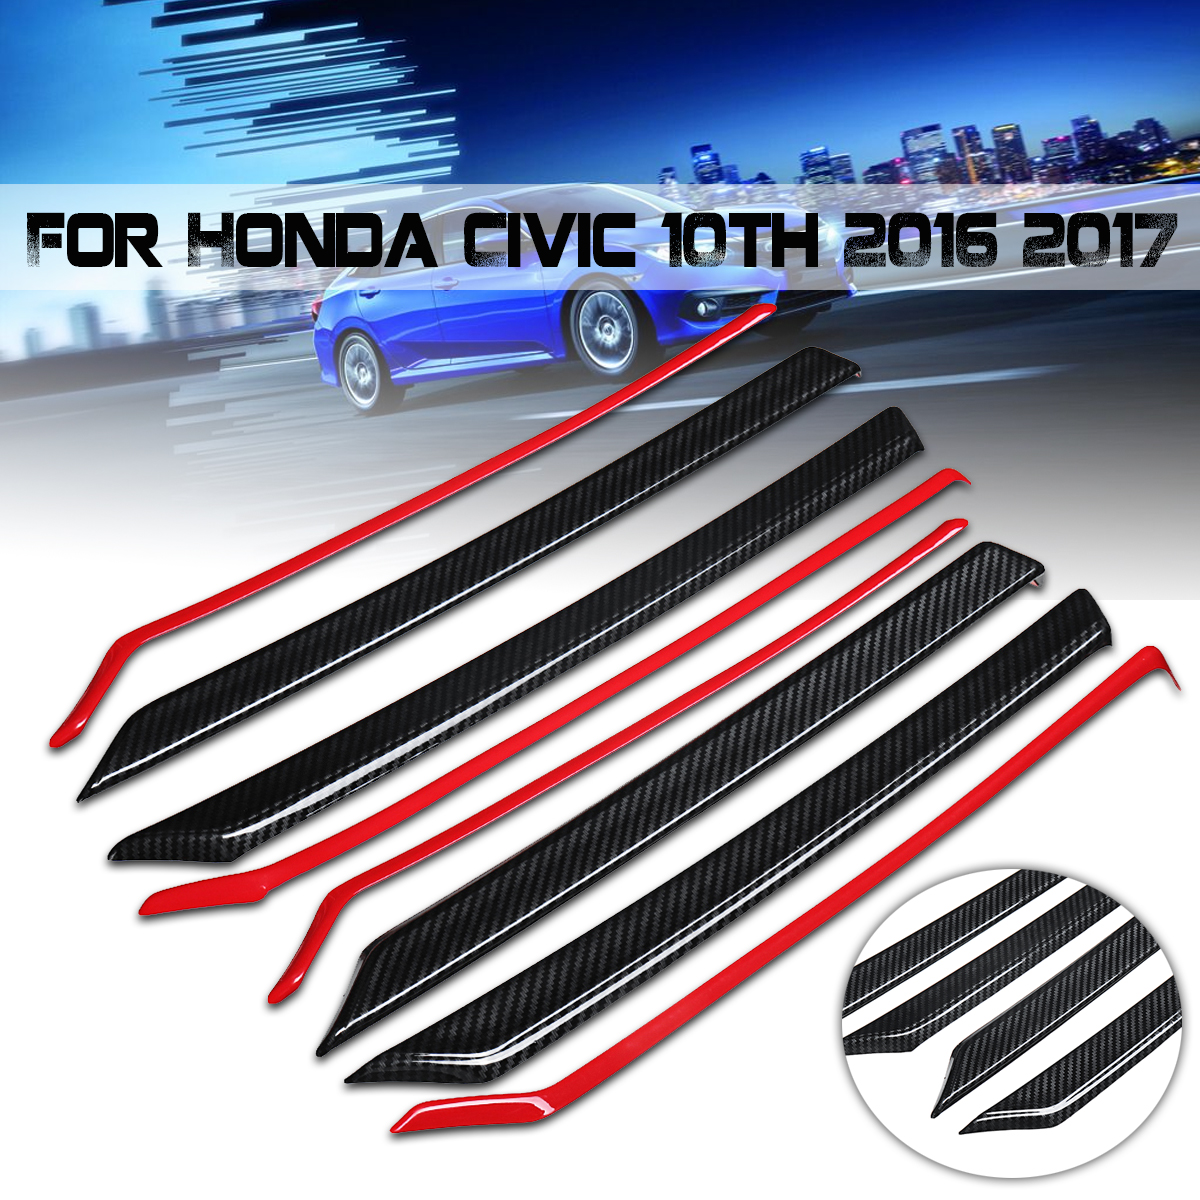 Auto Door Stickers Cover for Honda for Civic 10th 2016 2017 Car Interior Accessories 8pcs Carbon Fiber Style Trim Mouldings Set car carbon fiber color abs interior mouldings inner gear shift covers panel trim decal for honda civic 2006 2011 mt car styling